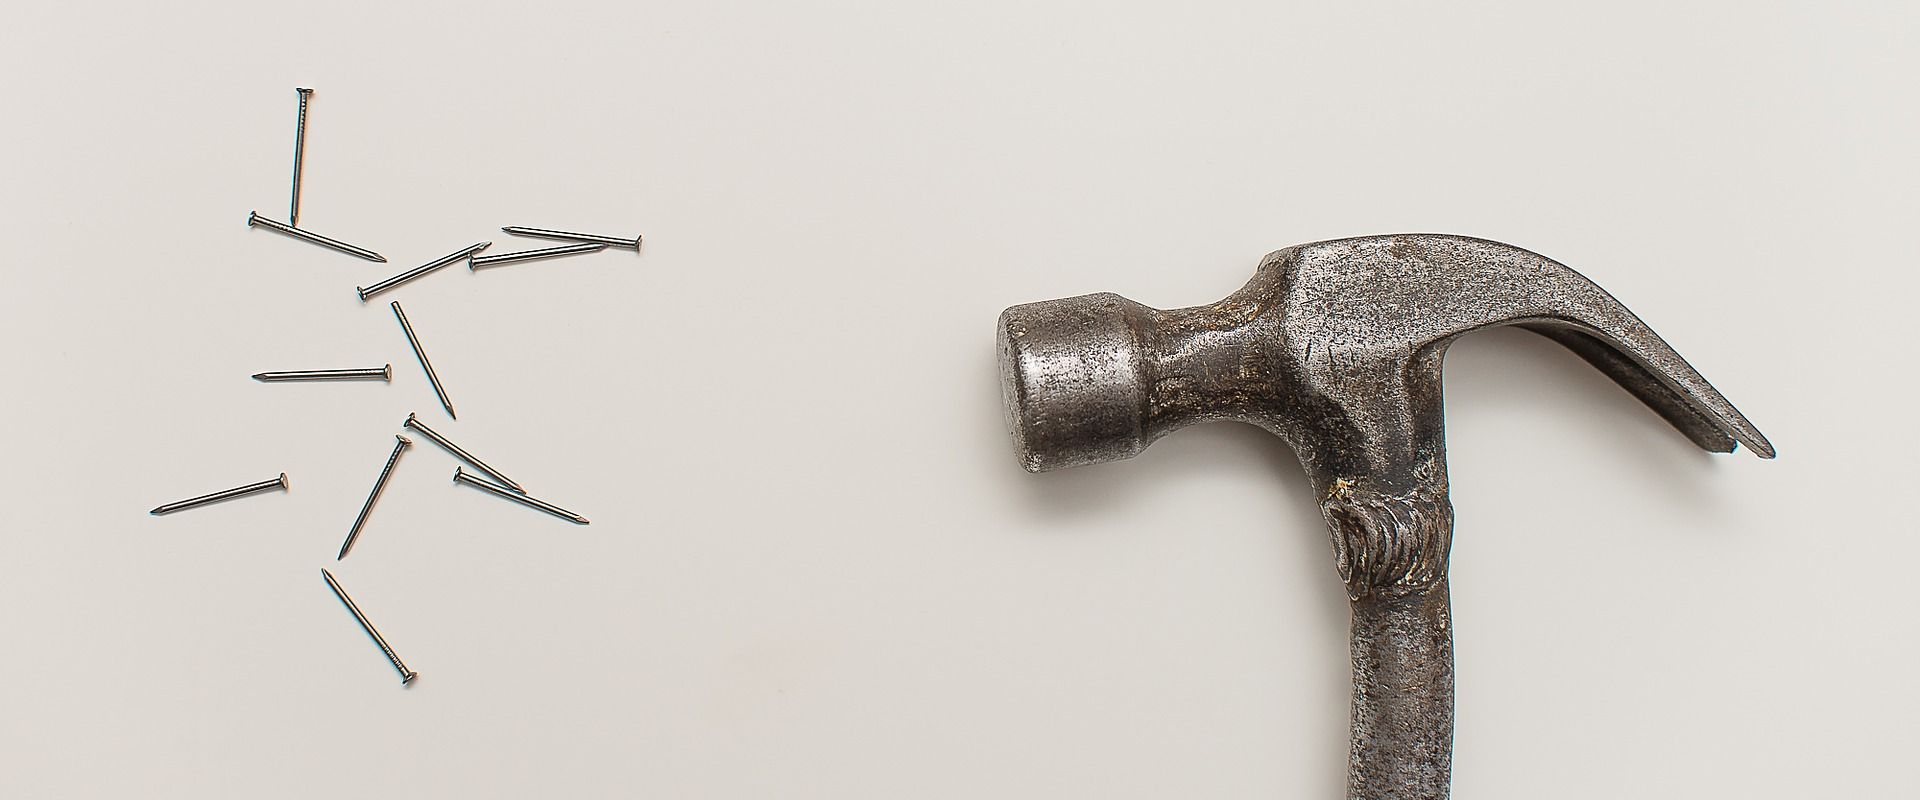 This is image of Hammer and Nails.